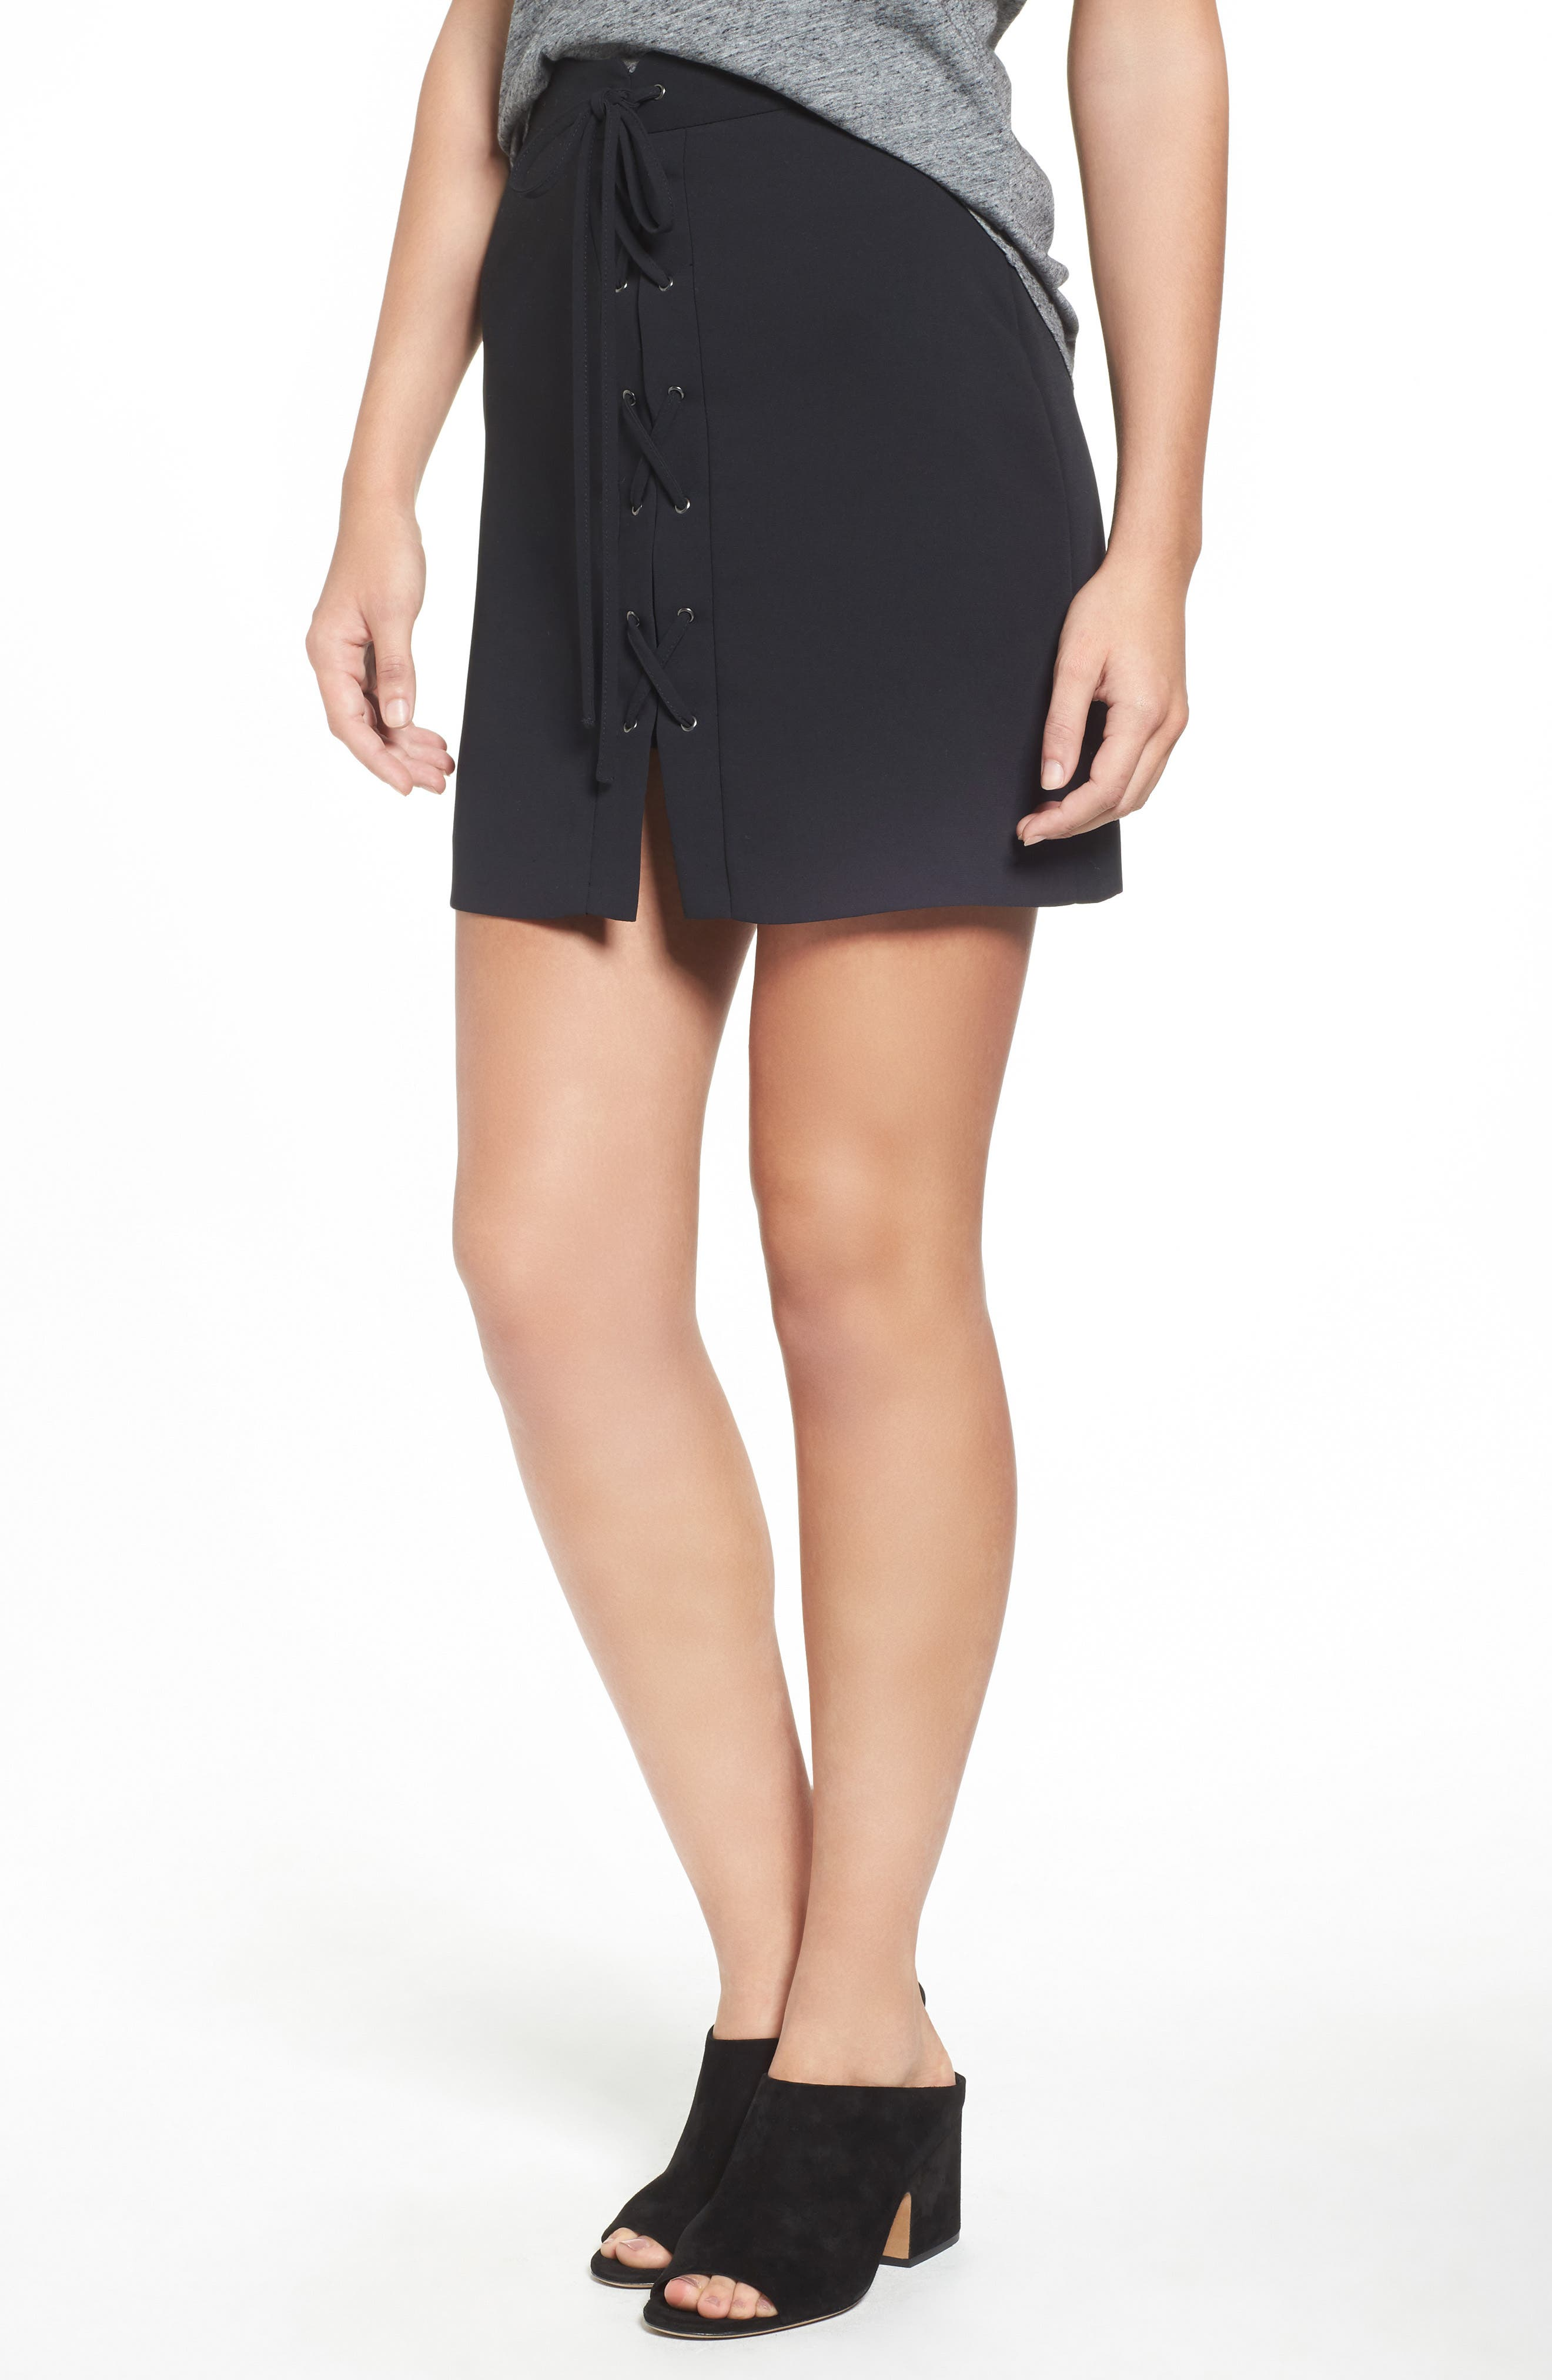 MADEWELL,                             Lace-Up Skirt,                             Main thumbnail 1, color,                             001